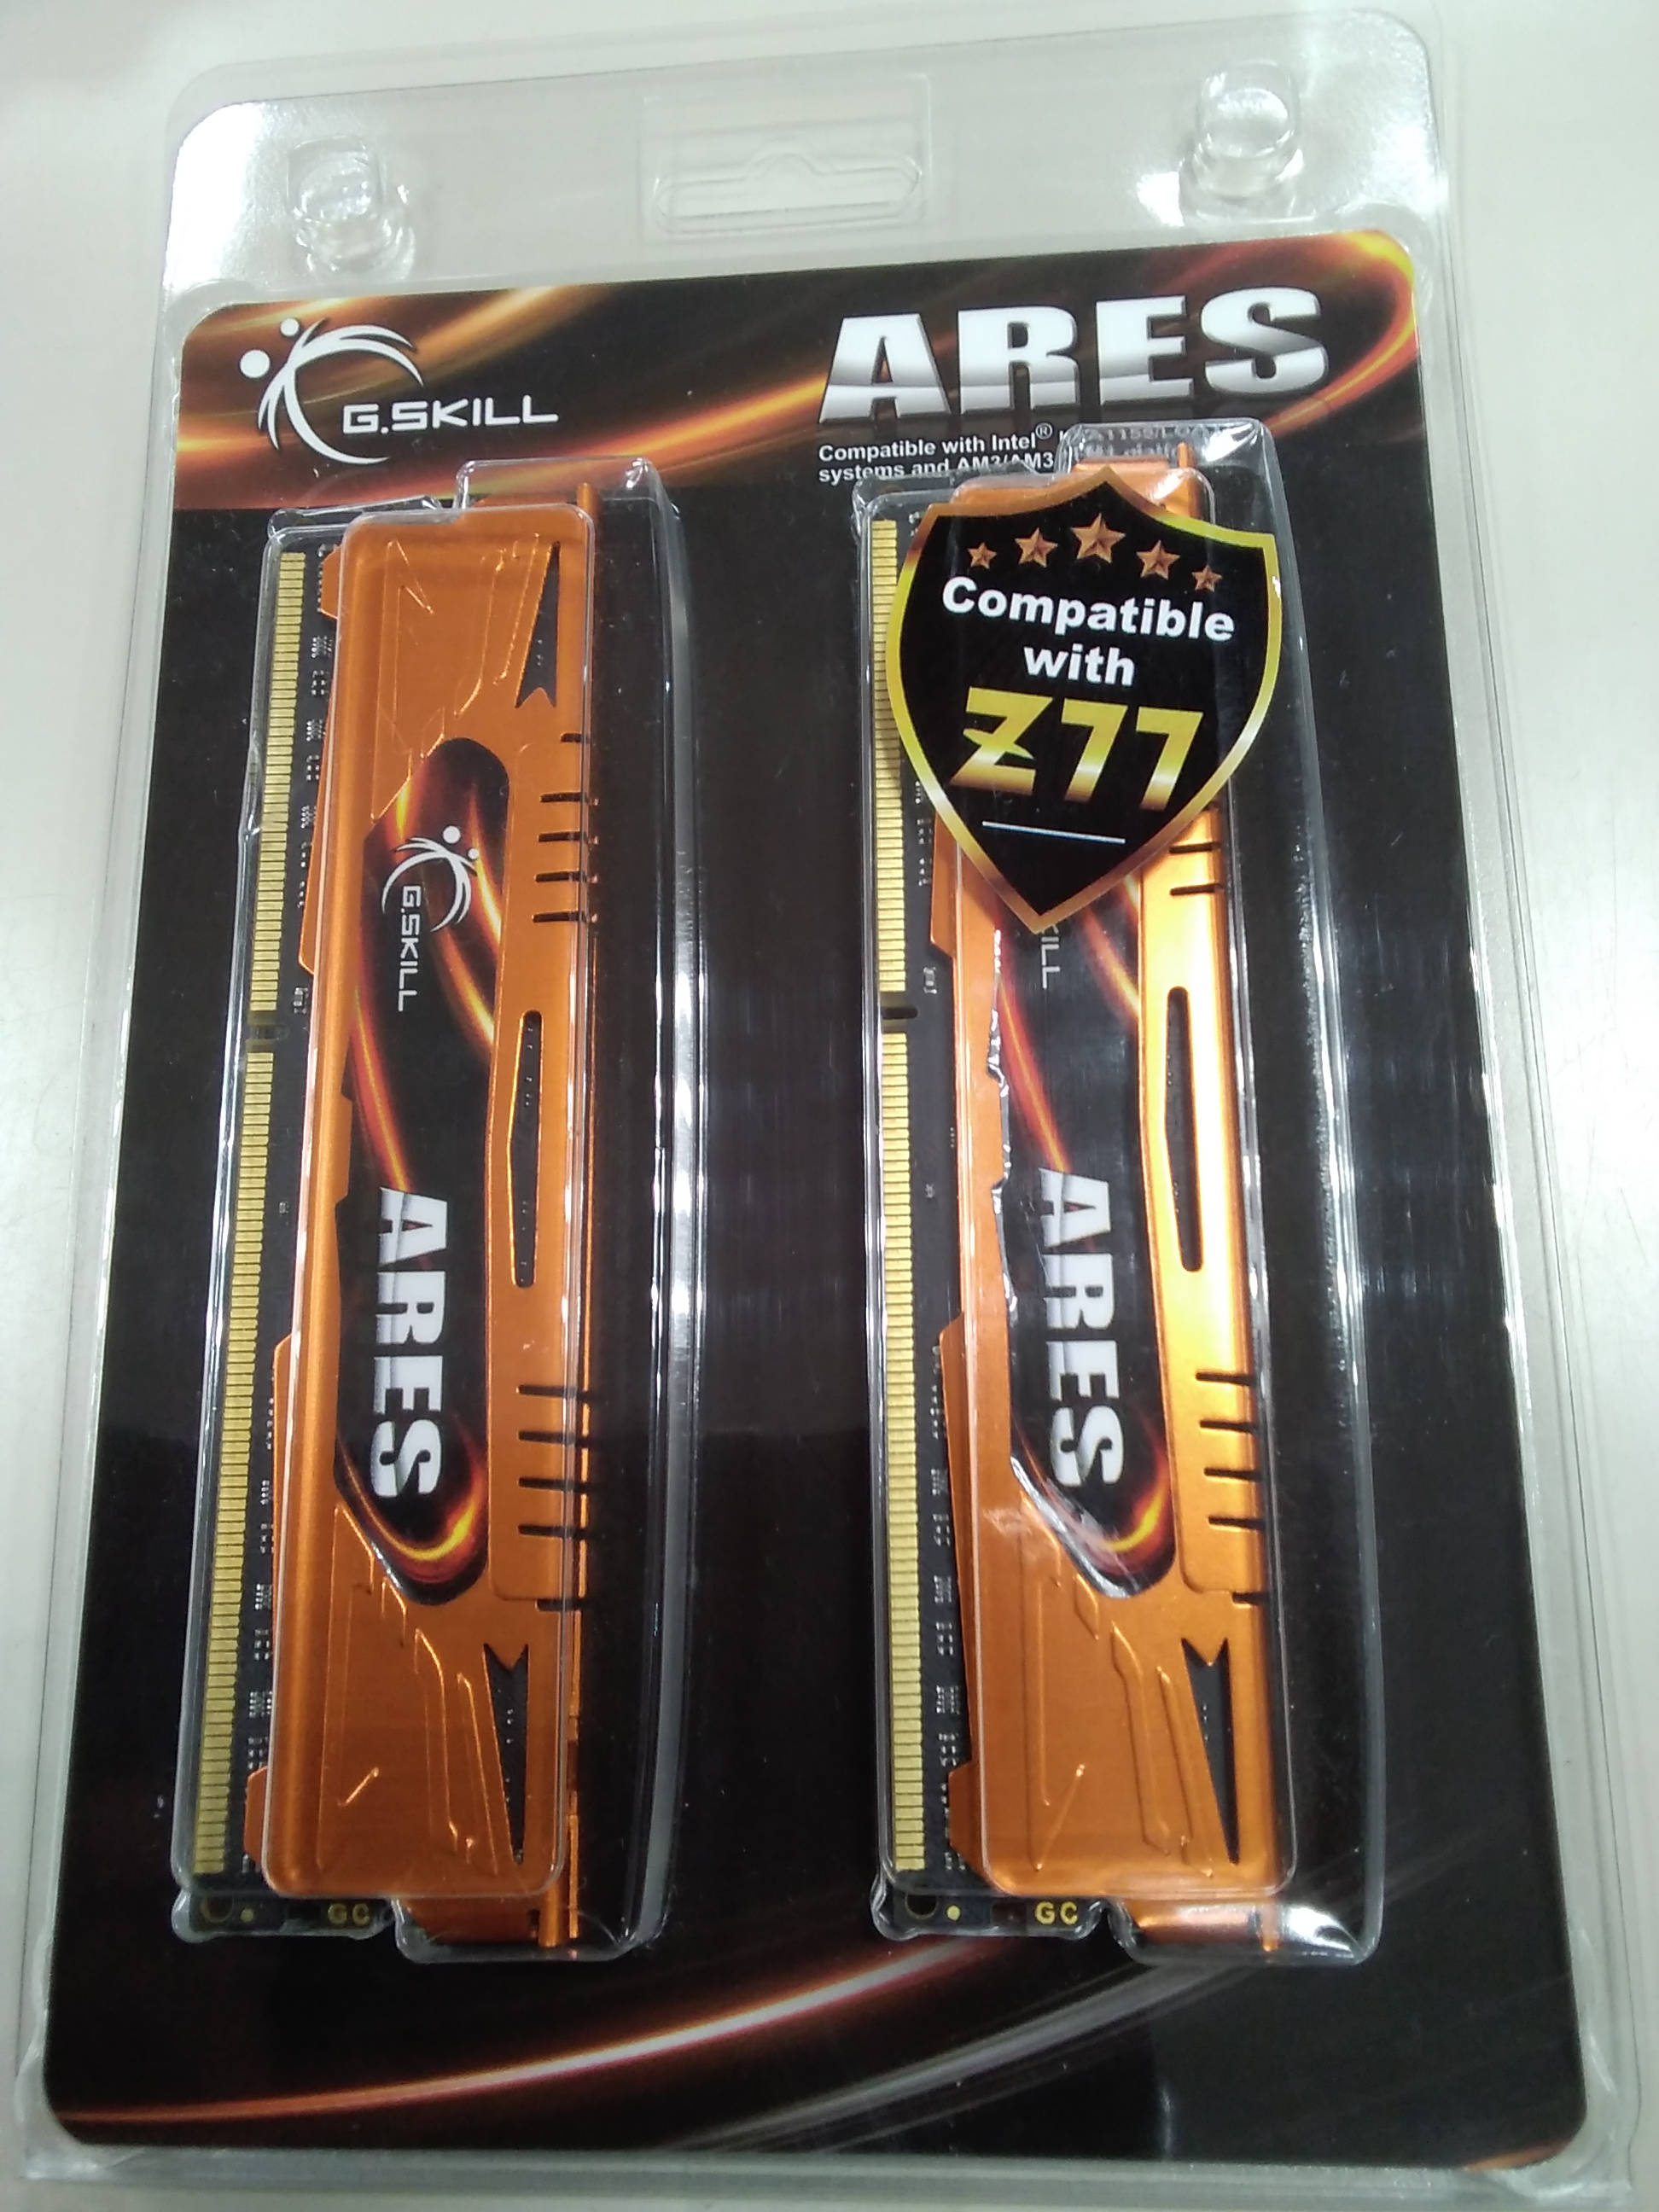 DDR3-1600/PC3-12800|ARES